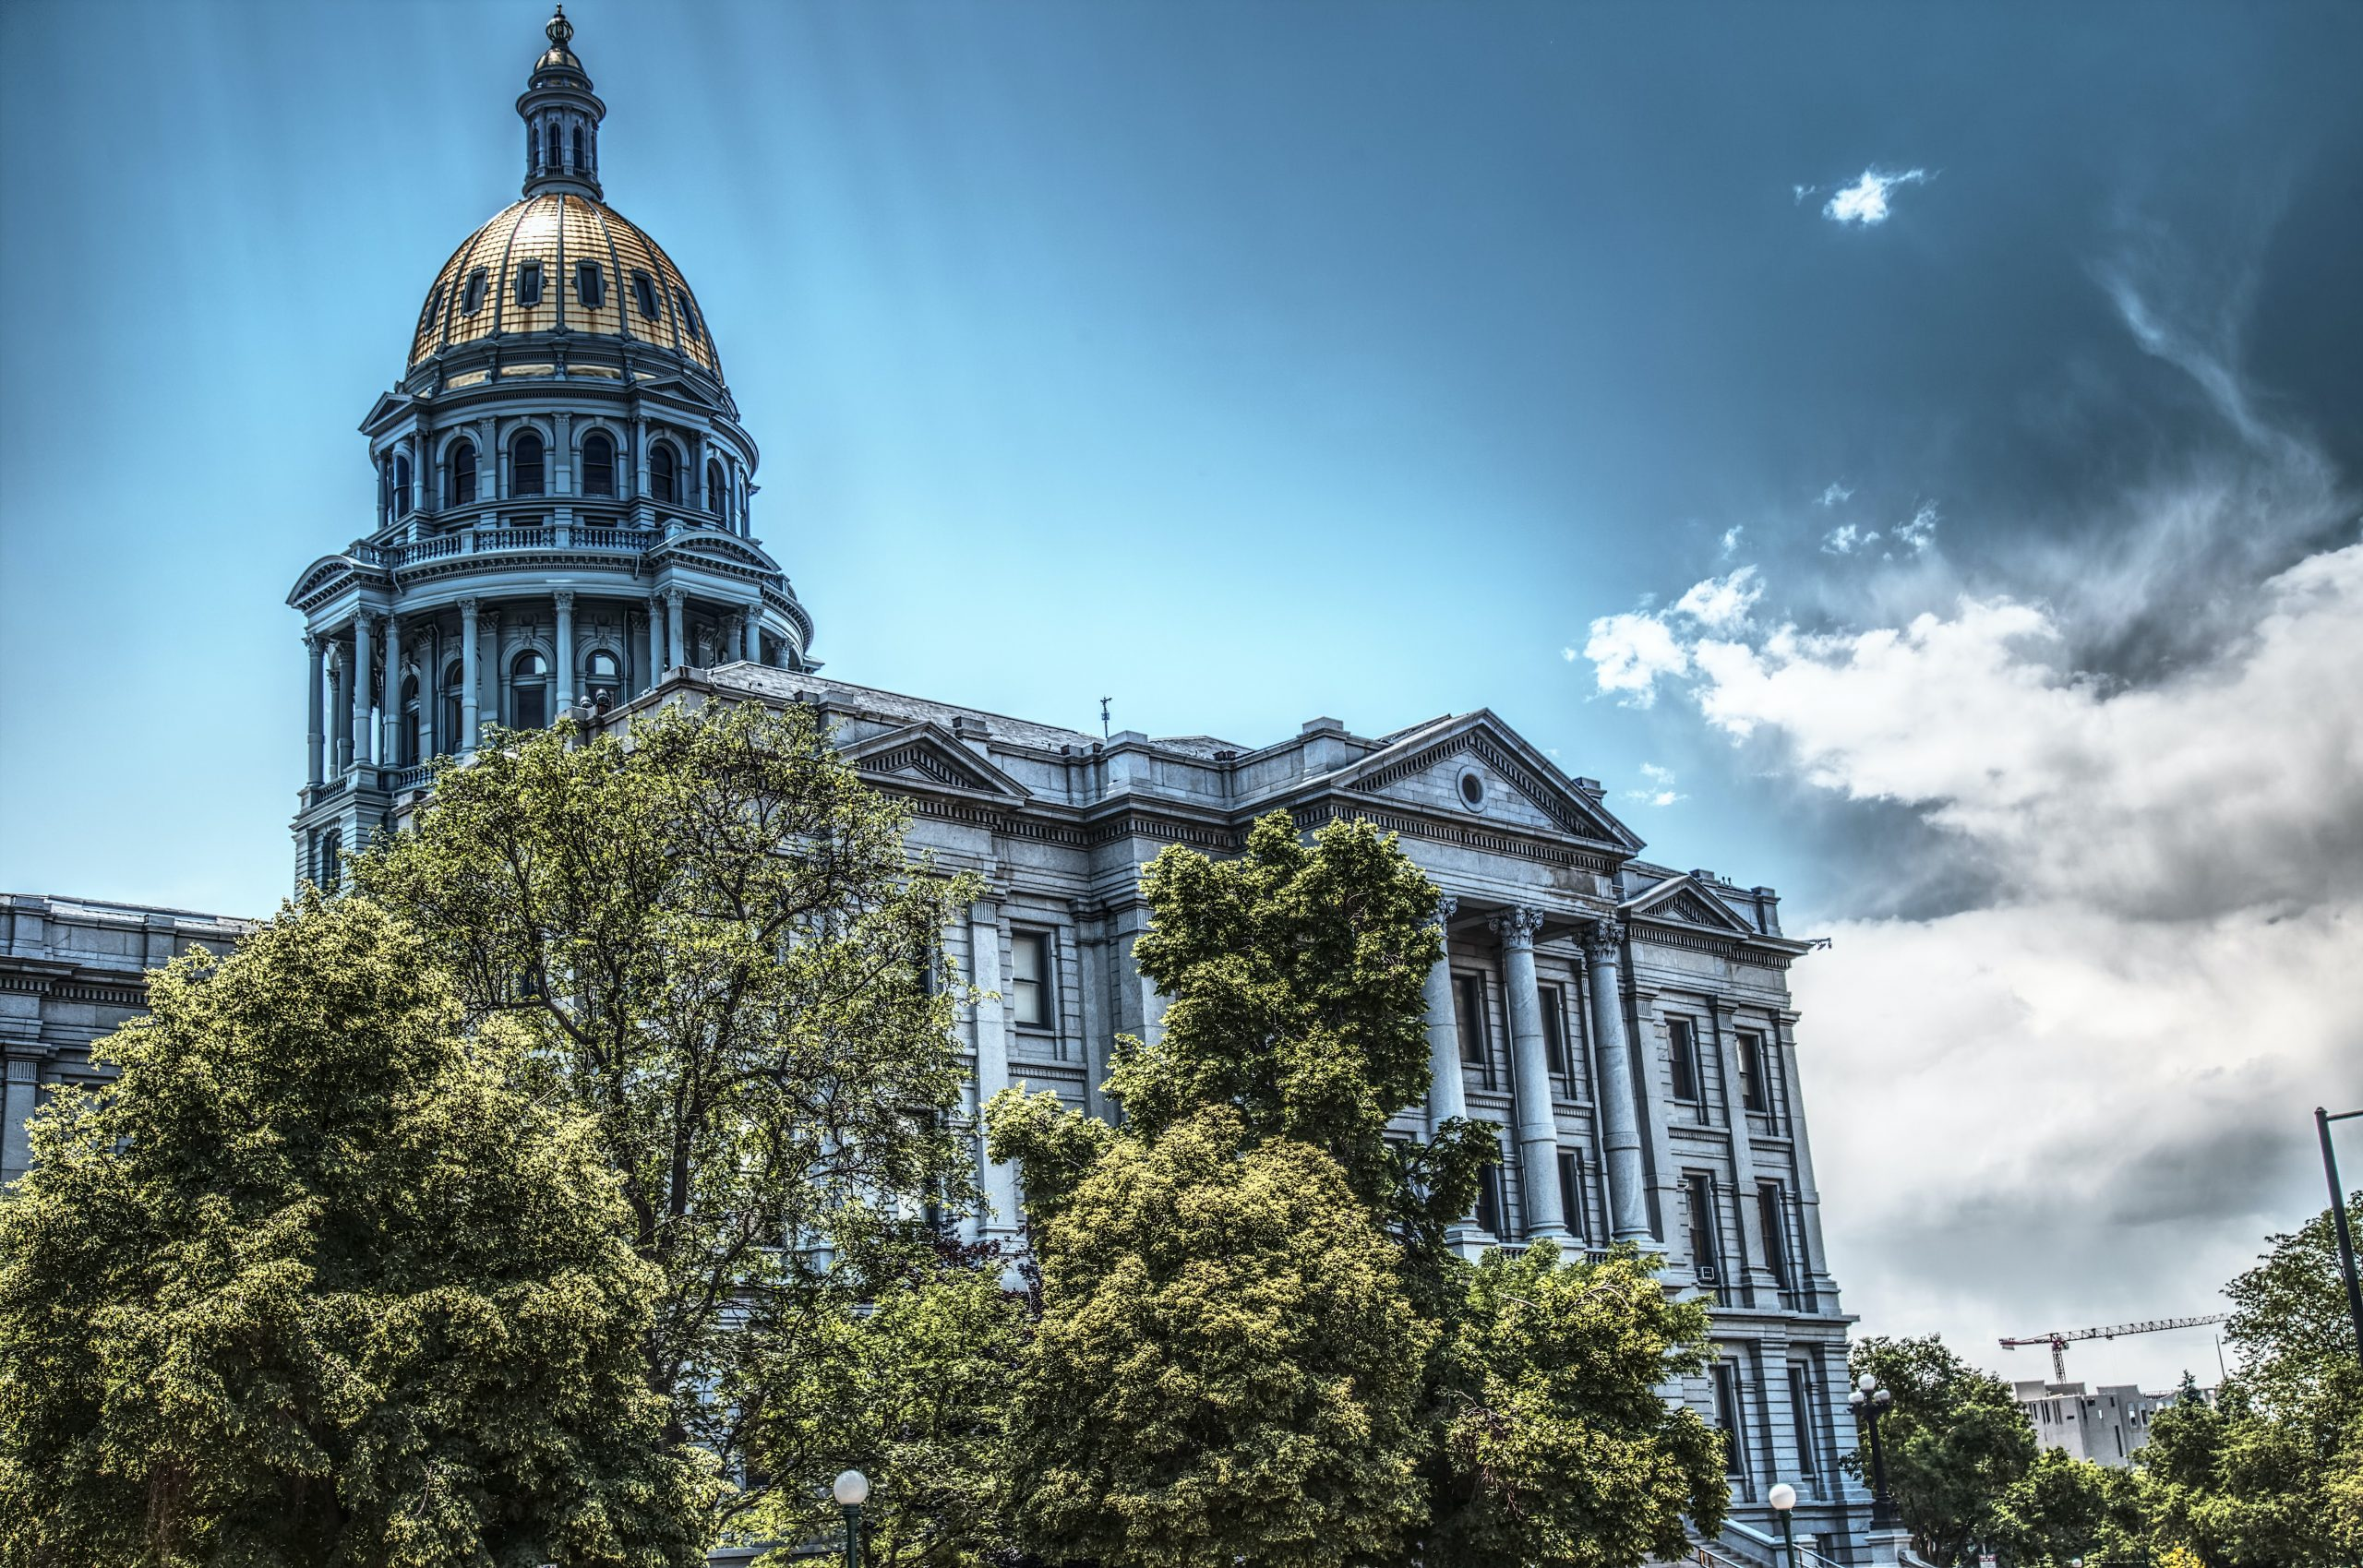 Image of the Denver State Capitol Building